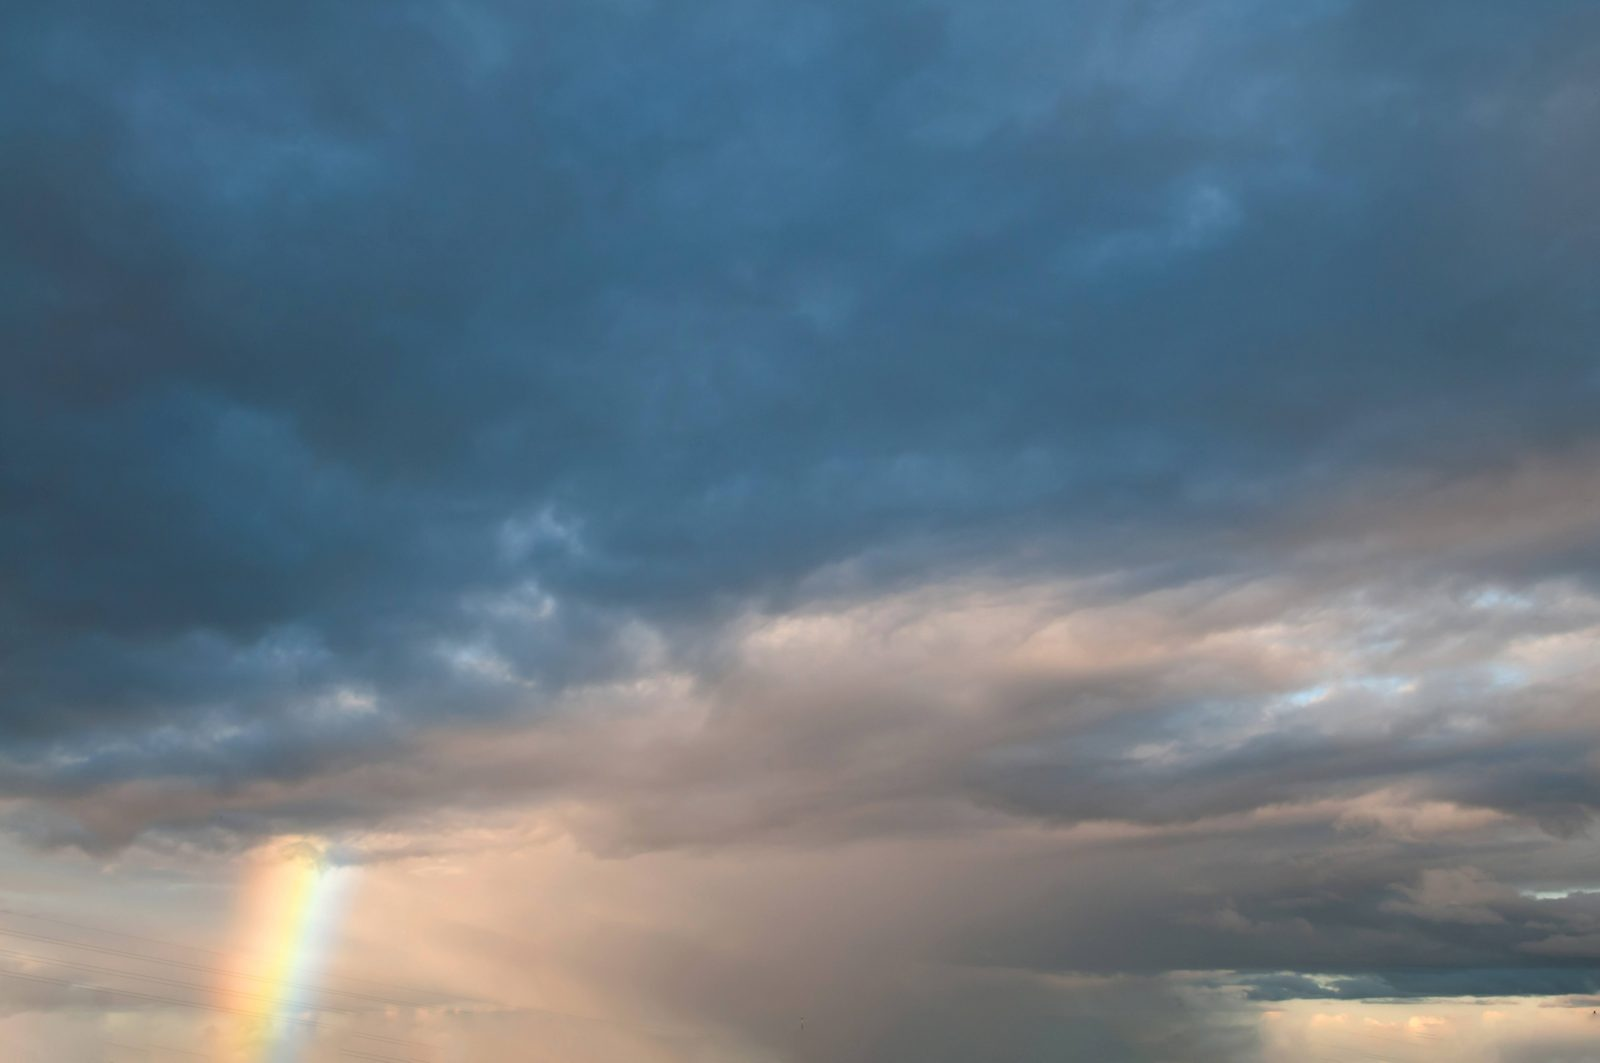 Cloudy sky and rainbow background